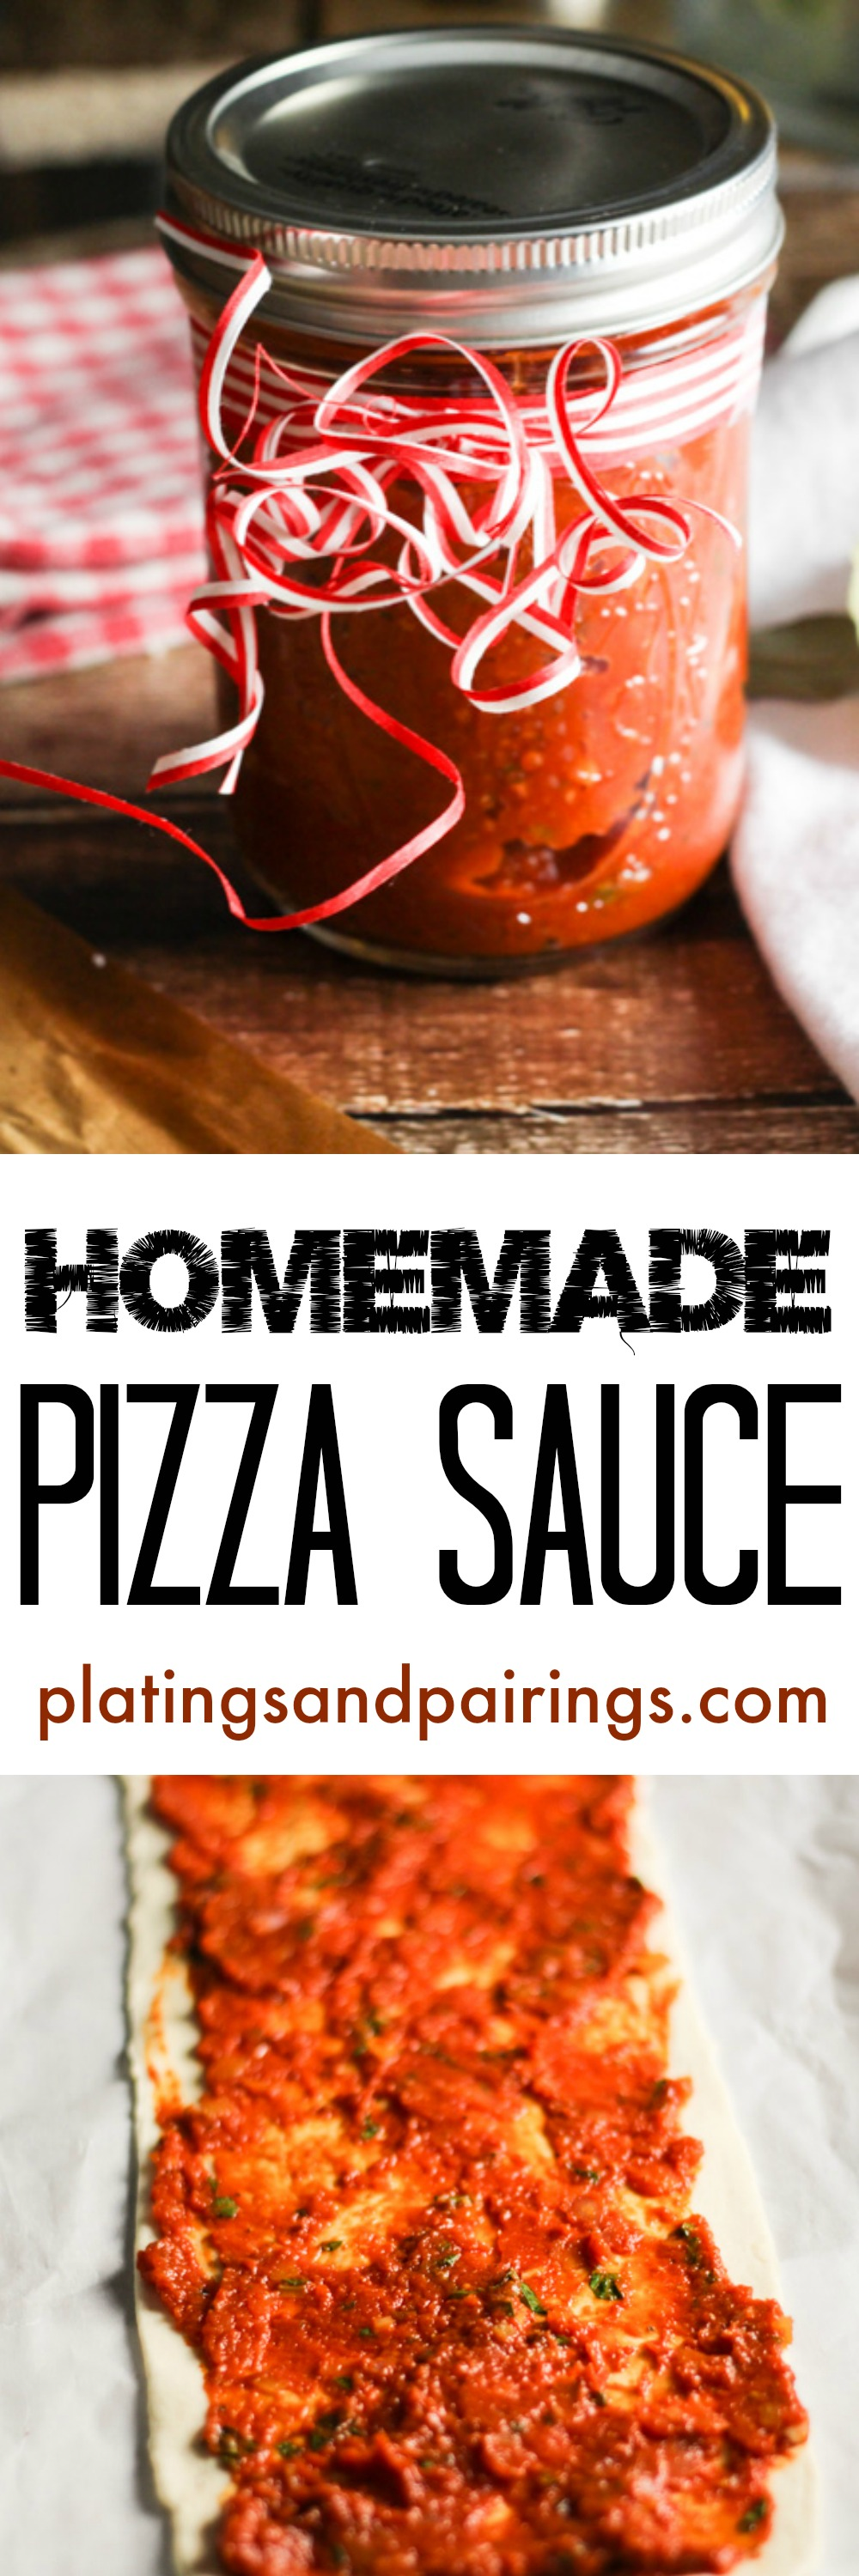 Butter makes it better! The BEST pizza sauce I have tried!